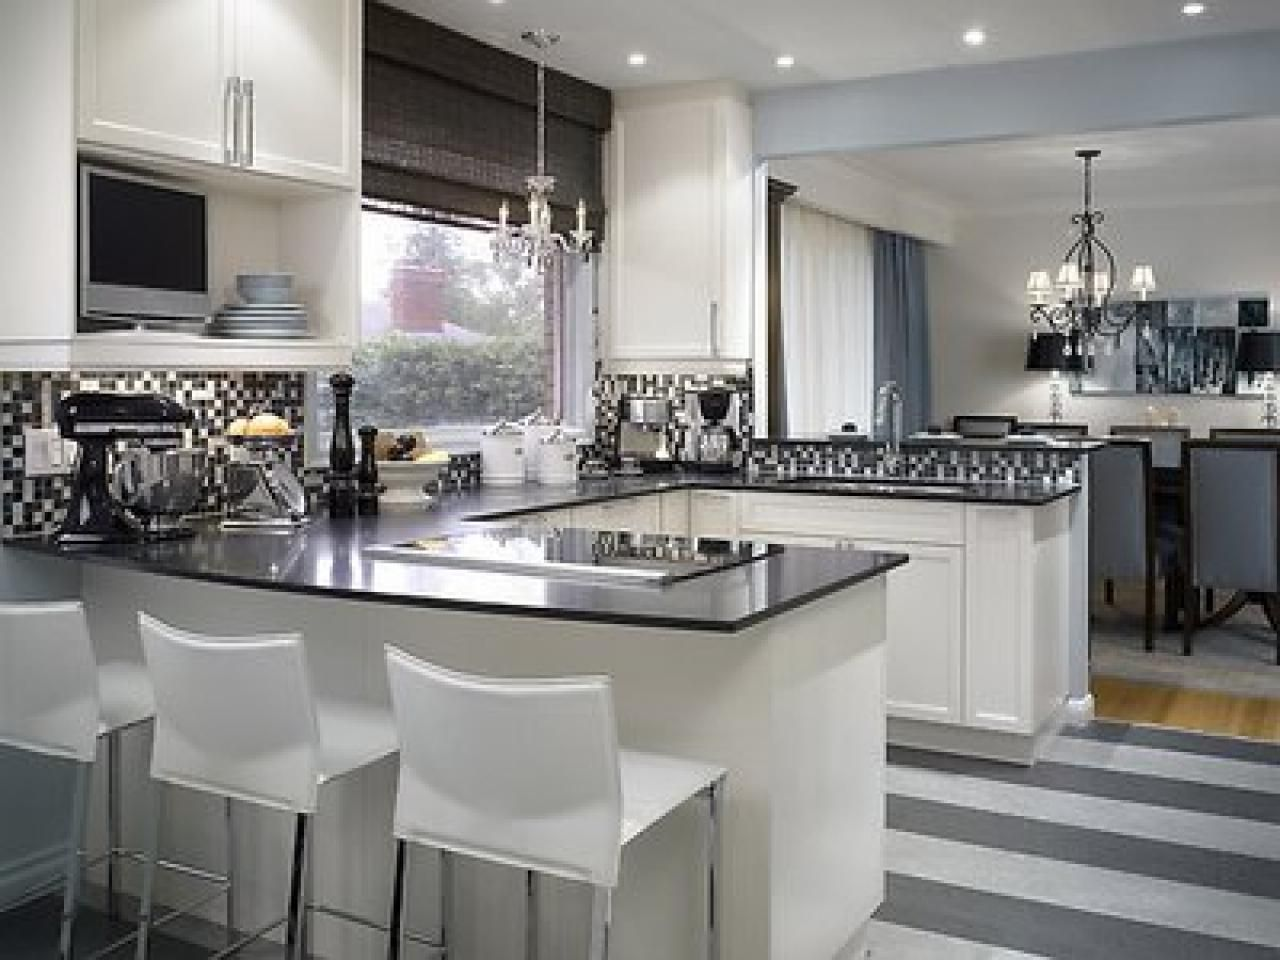 divine kitchen design. Create Your Own Divine Kitchen With Candice Olson S Top 10 Design  And Decorating Tips Kitchen Brown White Grey